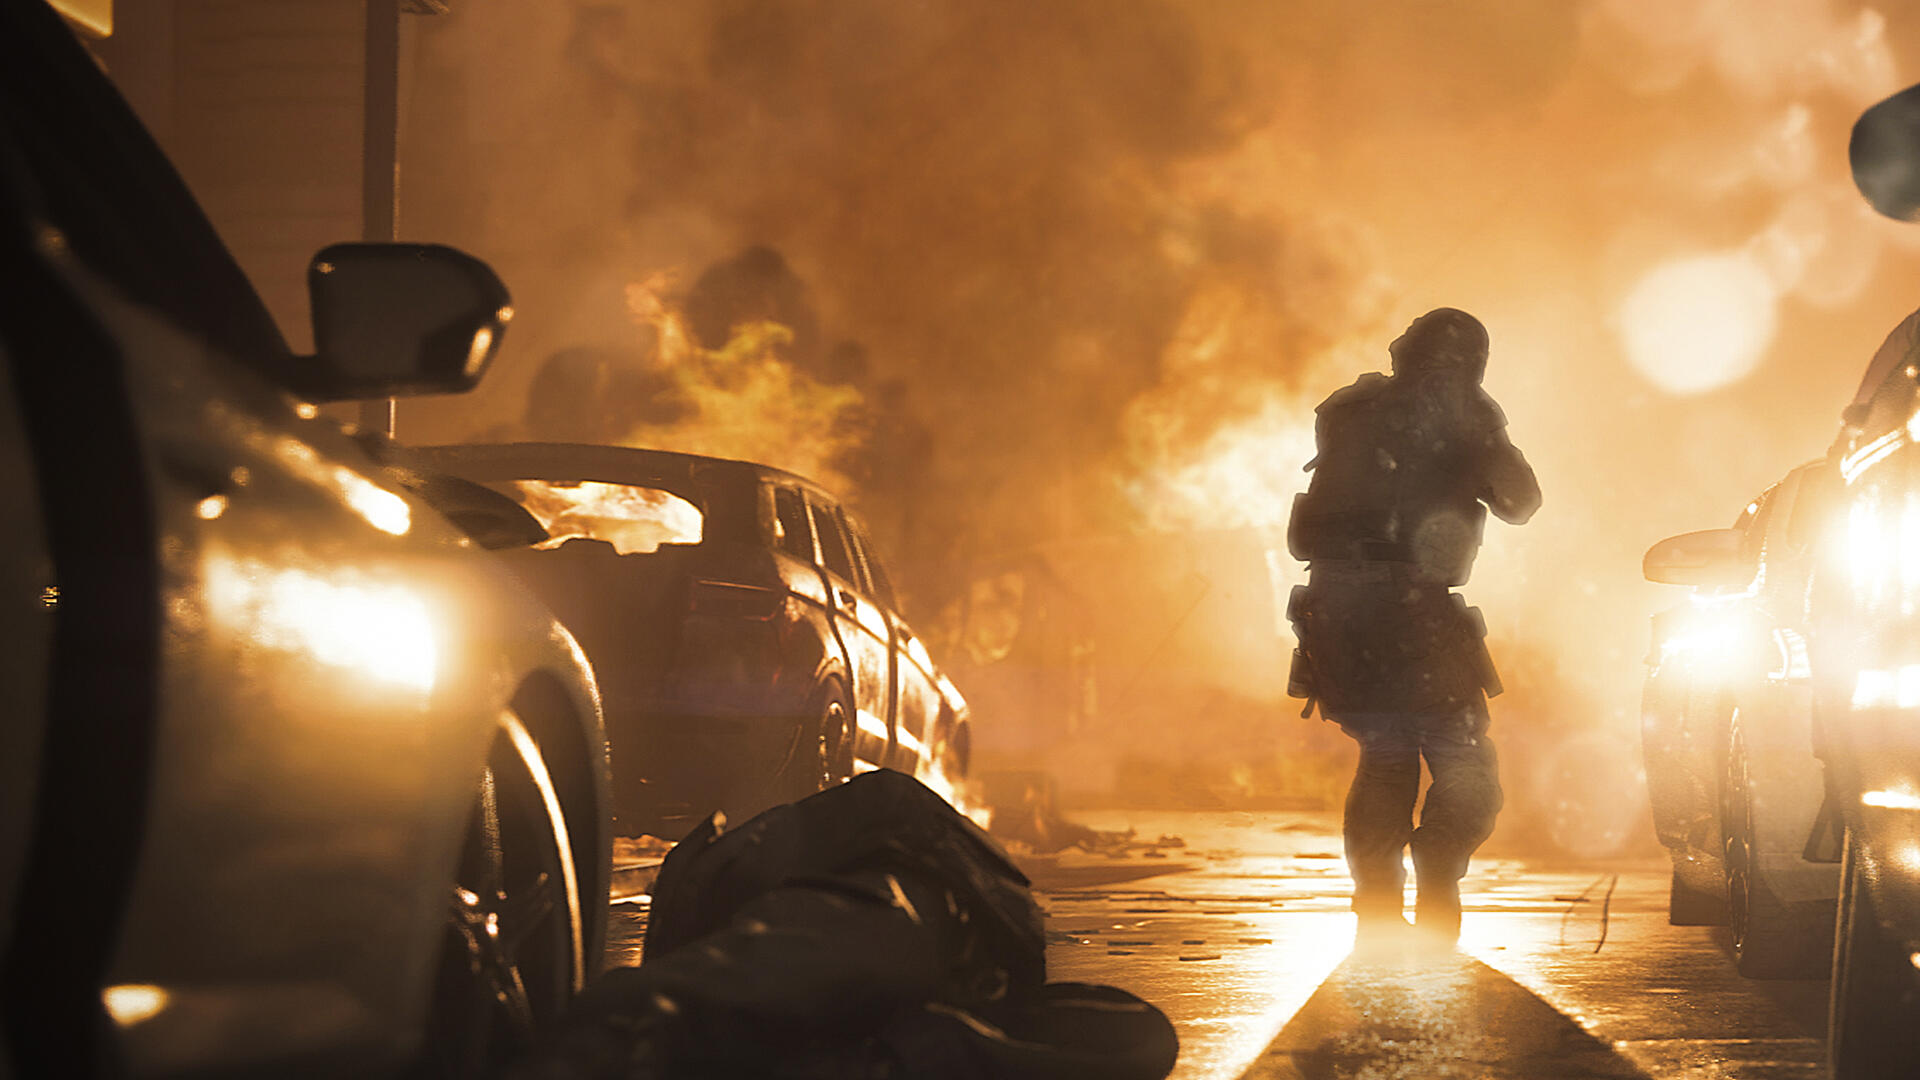 Call of Duty Modern Warfare Brings Back Killstreaks With Some Controversial Choices